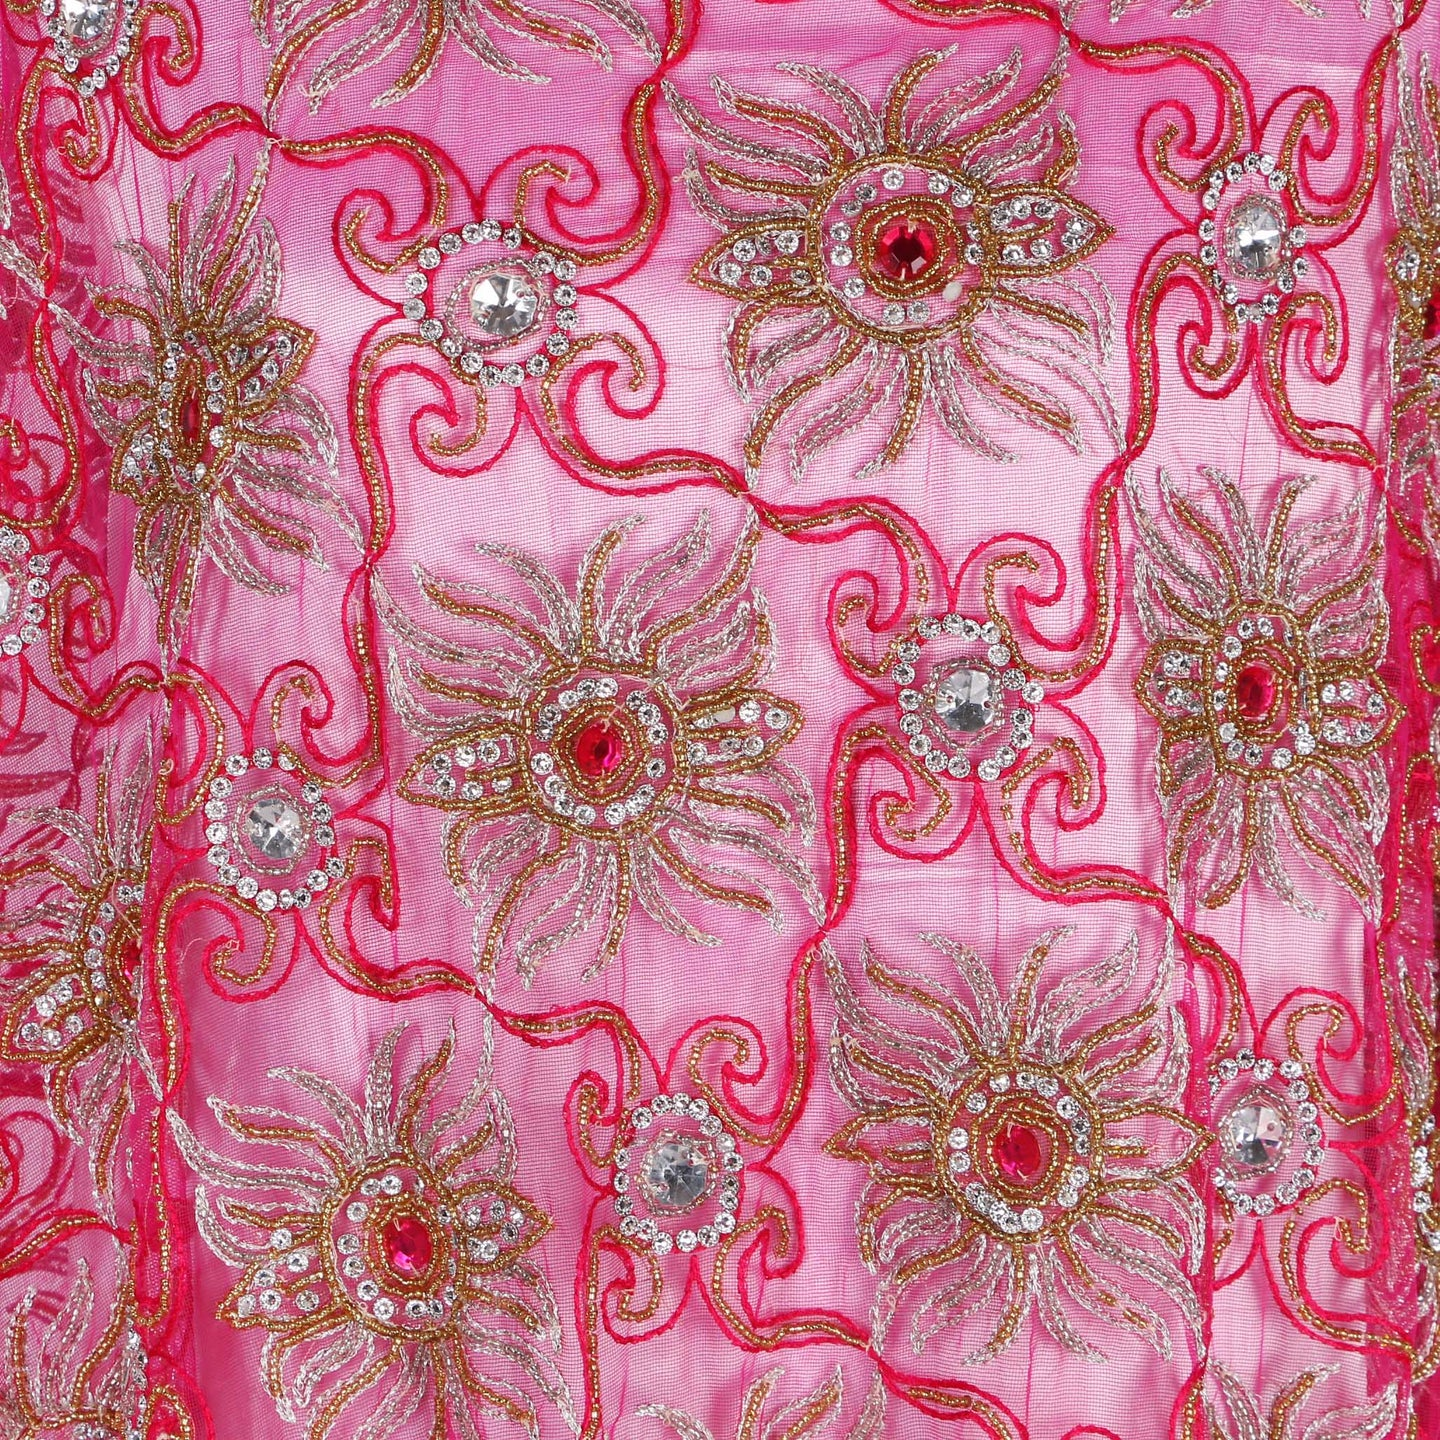 Hand Embroidered Fabric Design # 4110 - Fuchsia Pink - Per Yard